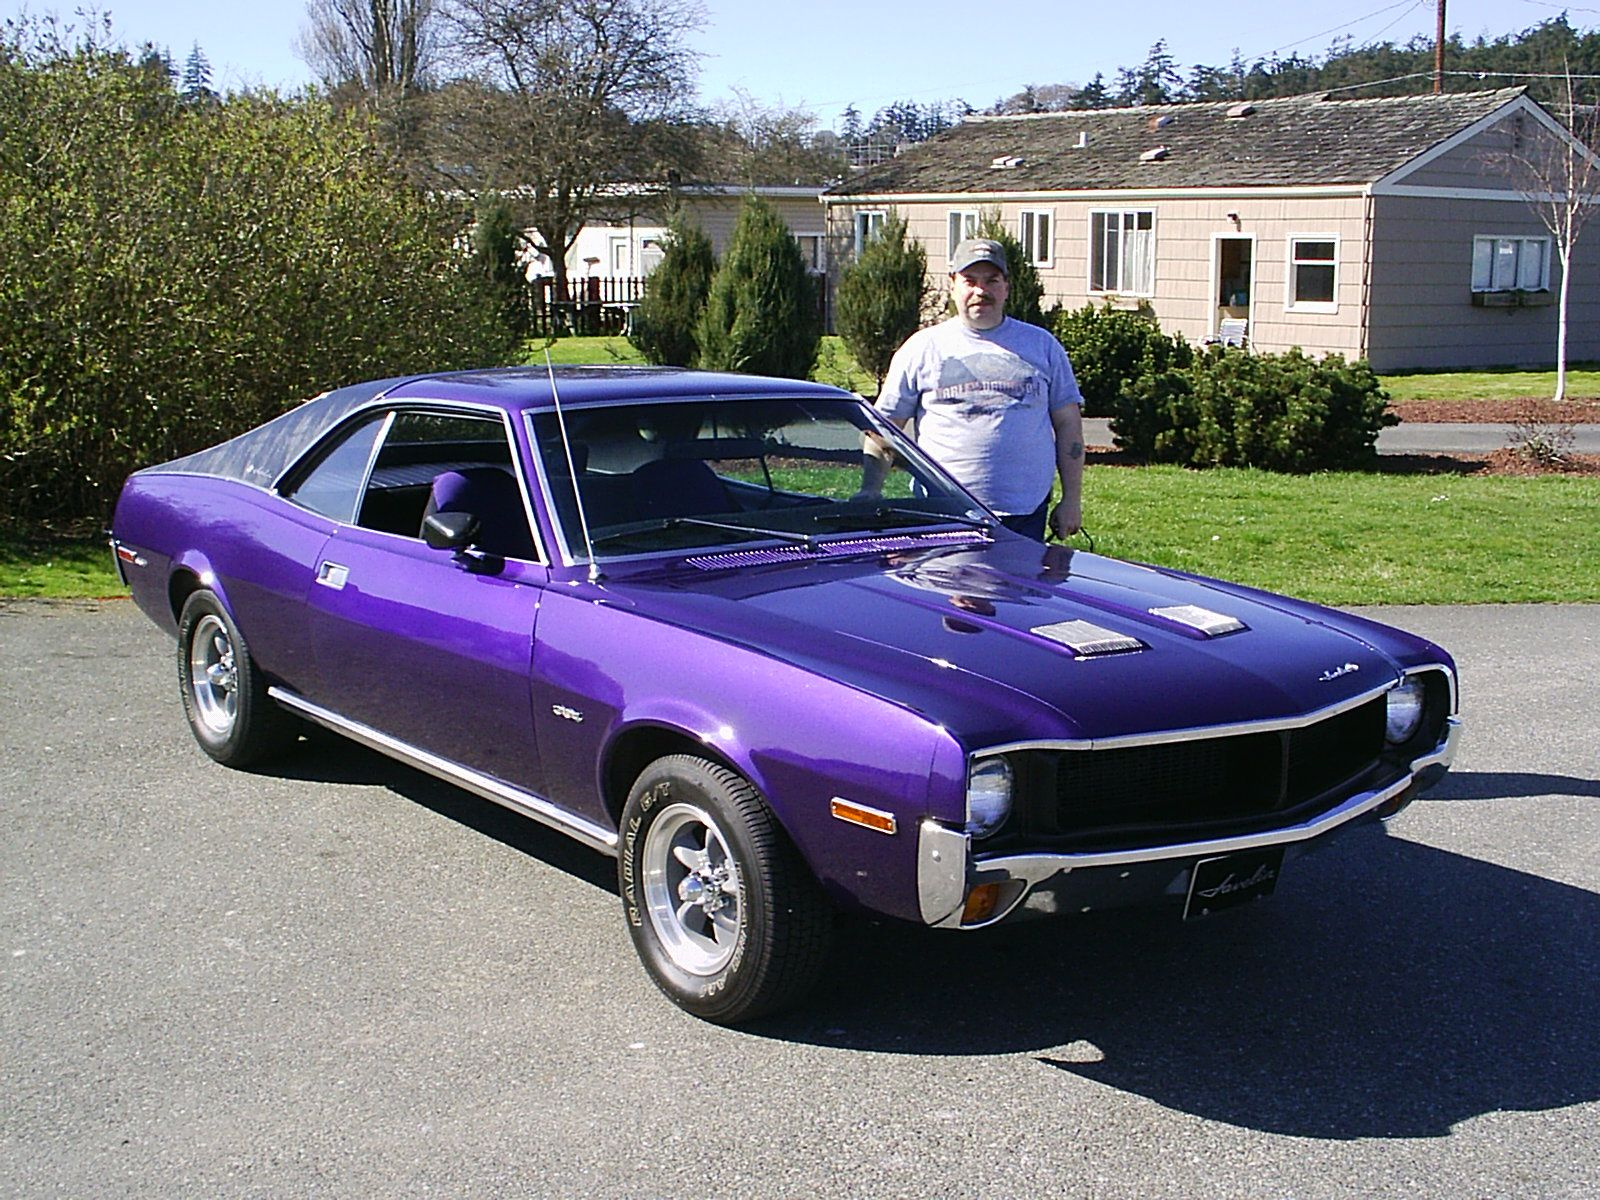 Pin by John Lally on amx/amc   Pinterest   Performance cars and Cars